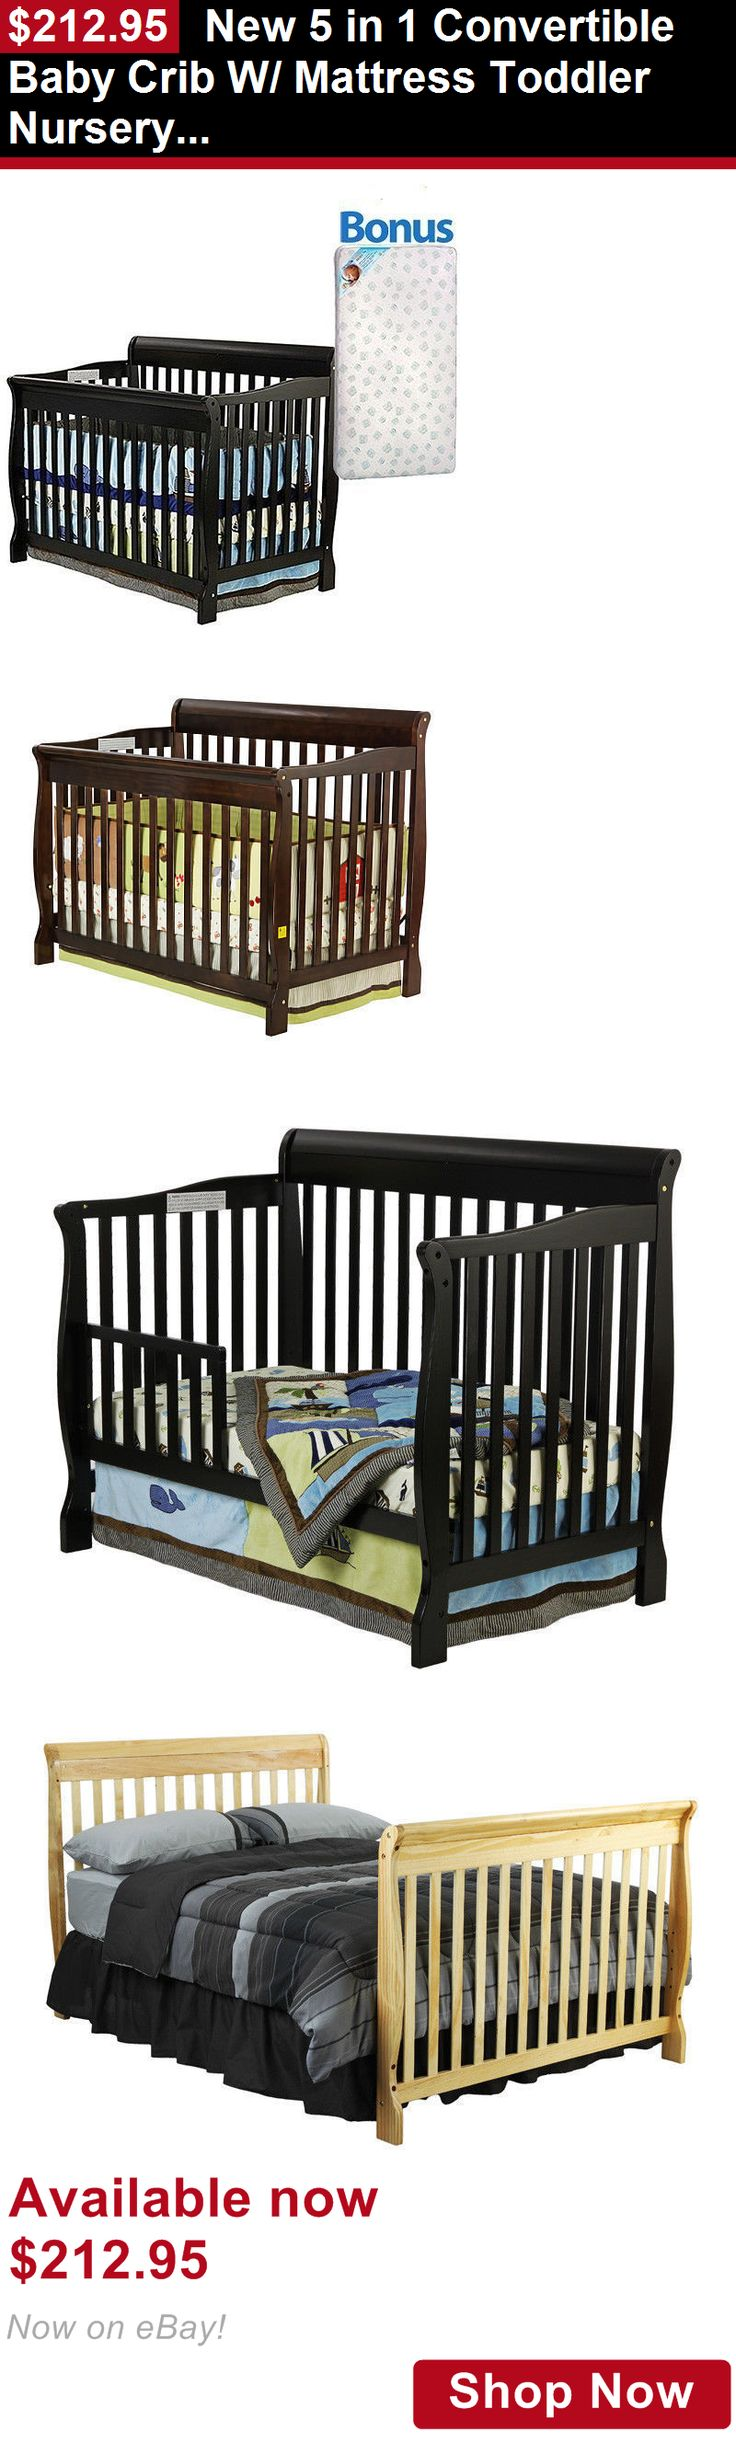 Amish crib for sale - Cribs New 5 In 1 Convertible Baby Crib W Mattress Toddler Nursery Bed Changer